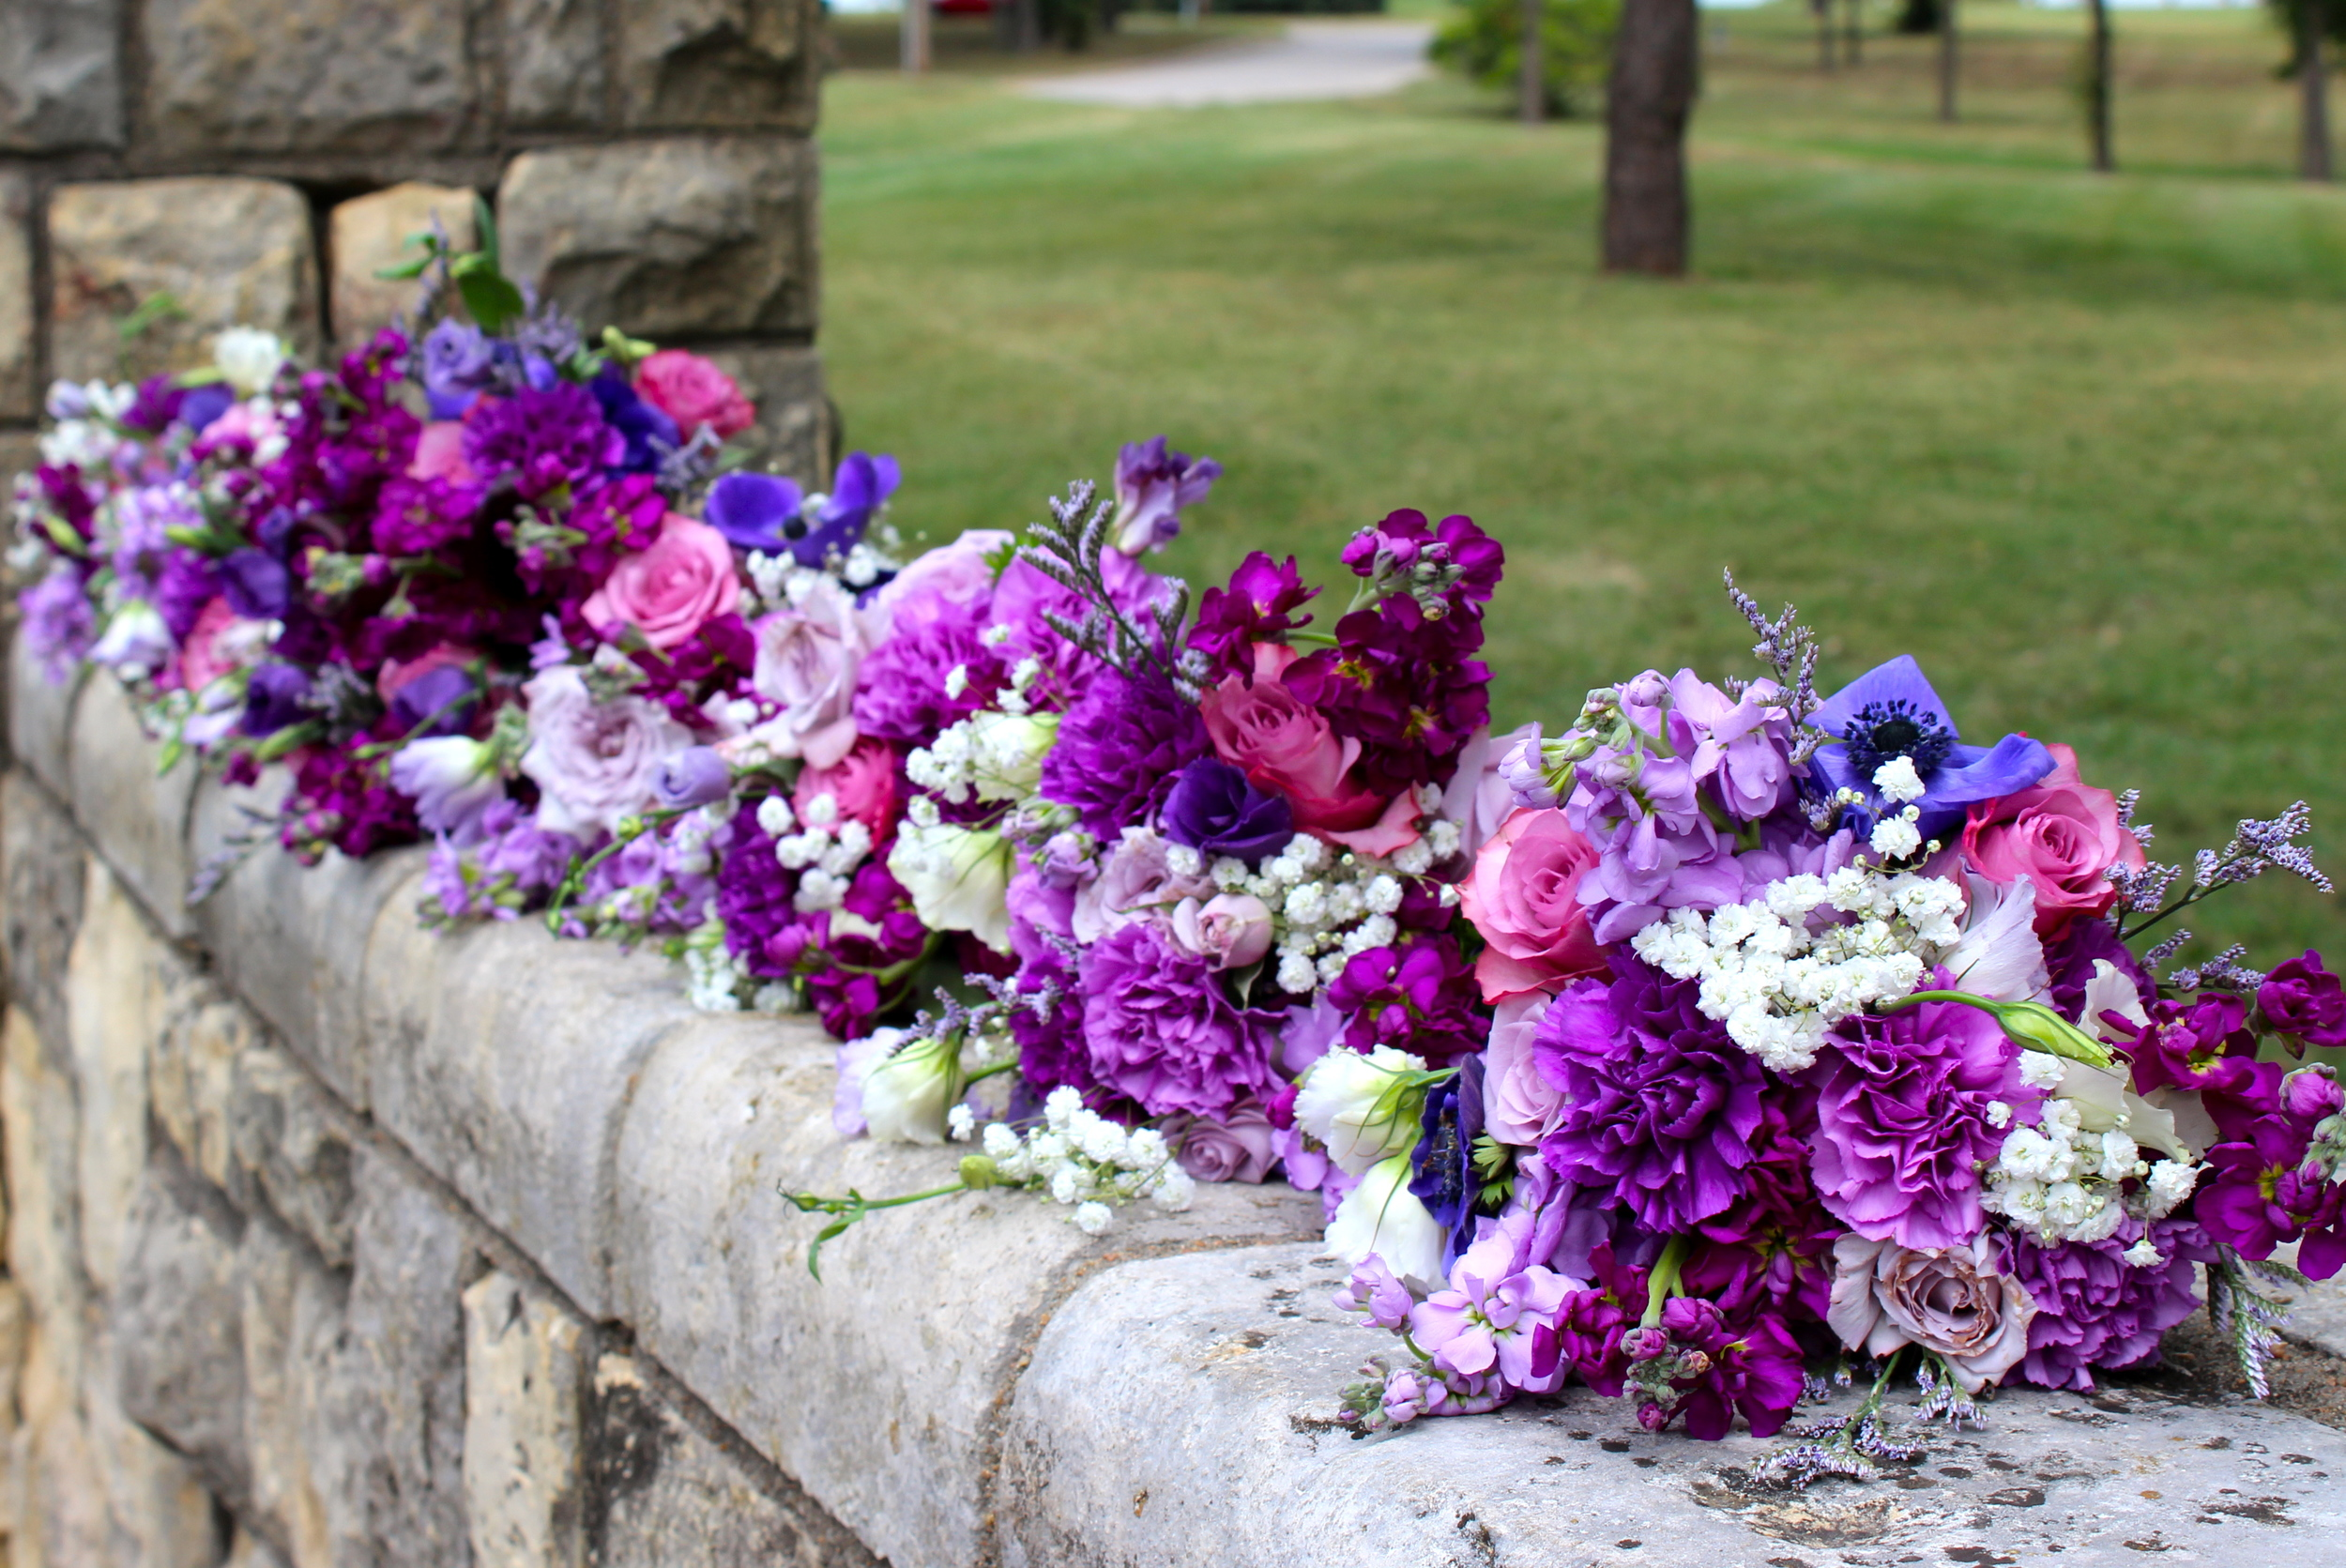 Mixed purple bouquets with carnations and roses